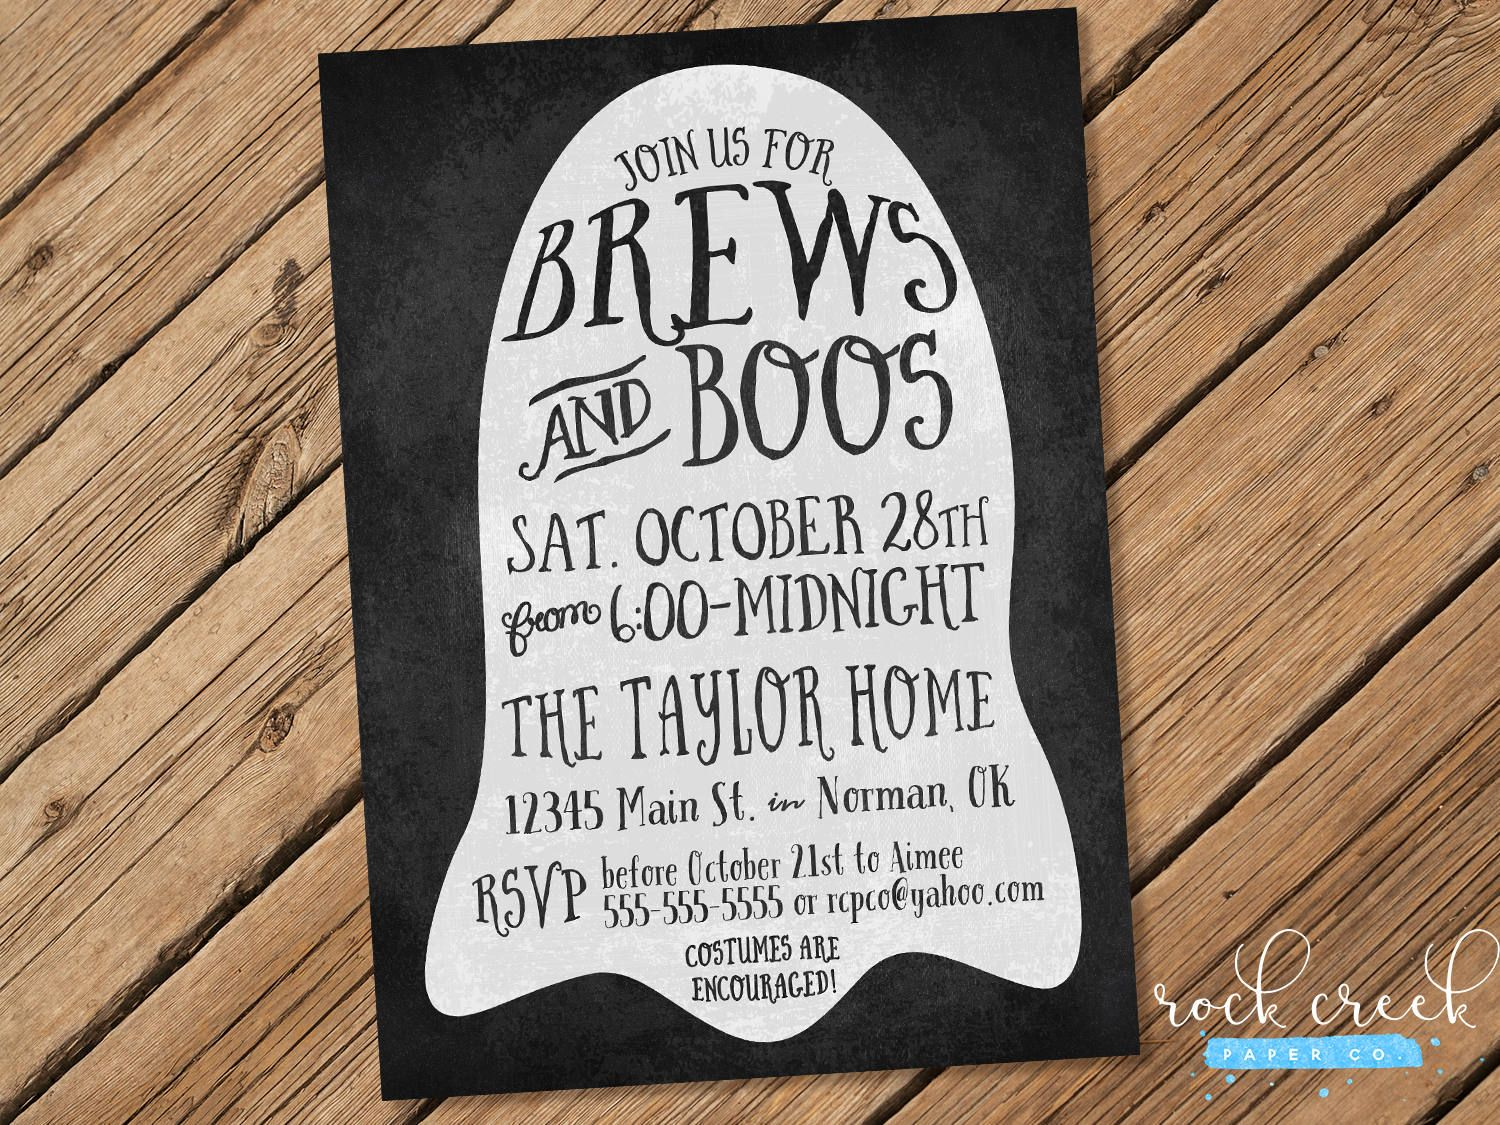 Pin by kim gamble on rock creek paper co pinterest rock creek rock creek halloween parties letter size party invitations filing pdf stopboris Gallery